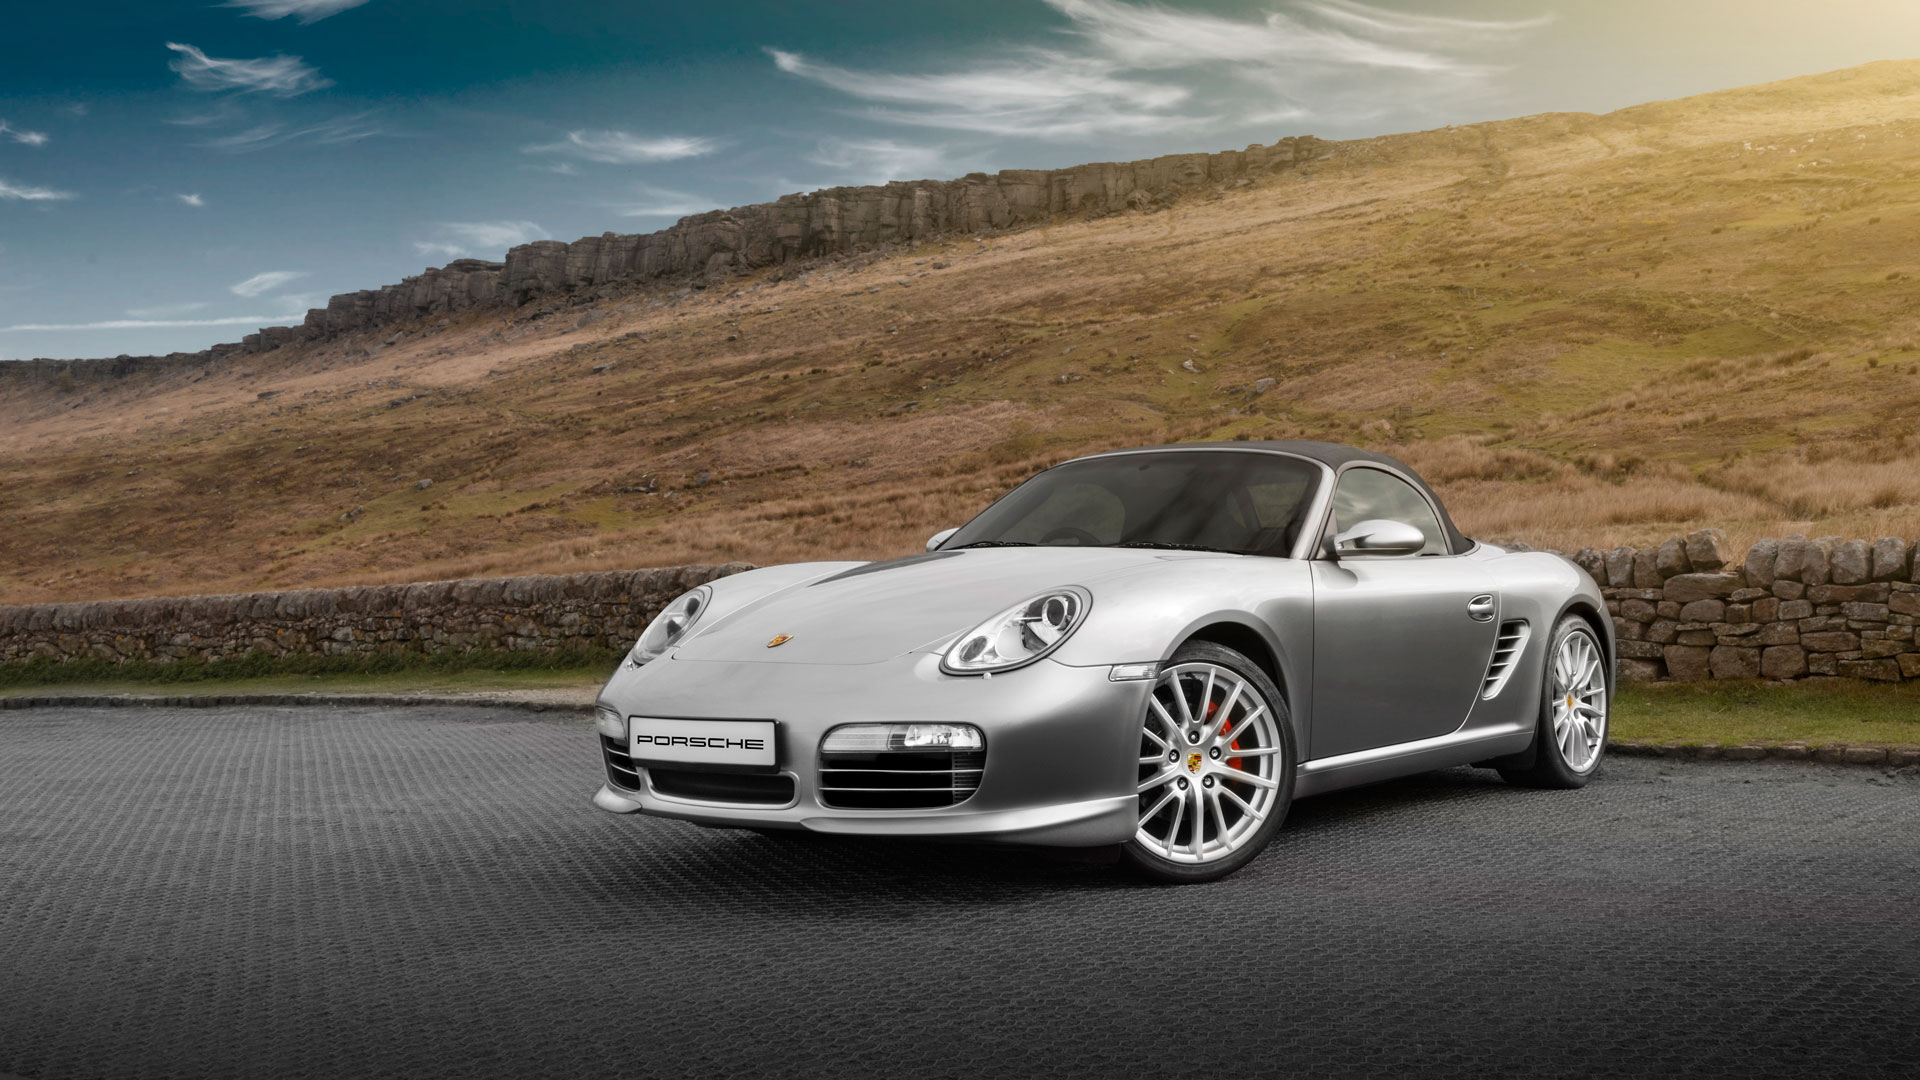 silver porsche image editing sheffield wipdesigns after